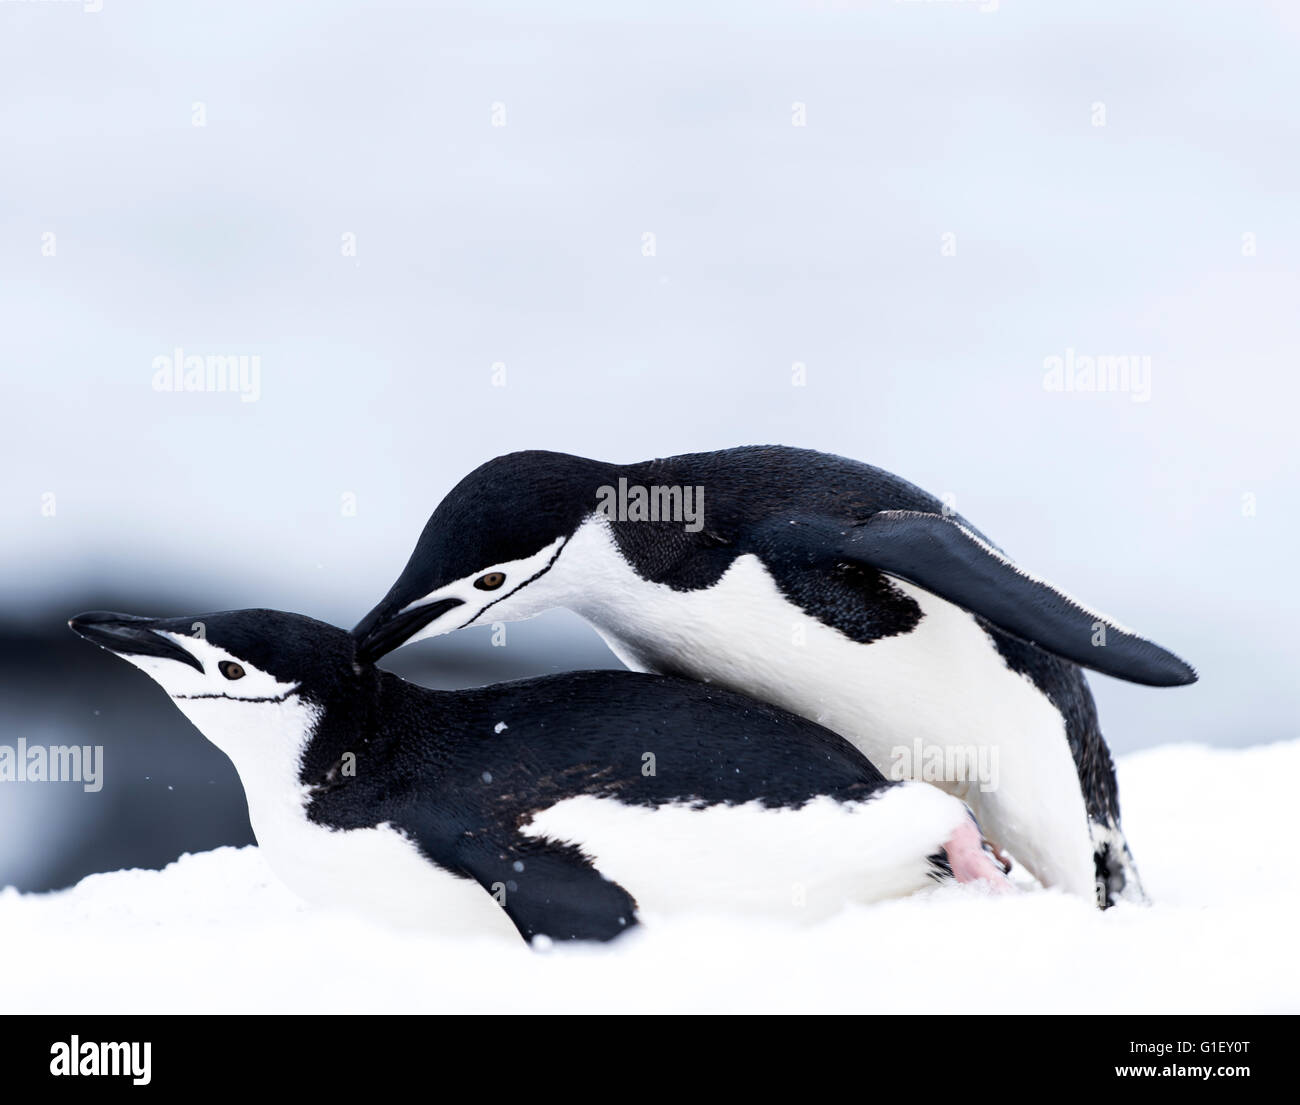 Gamla (Pygoscelis antarctica) l'accouplement sur la neige Half Moon island Péninsule Antarctique Antarctique Photo Stock